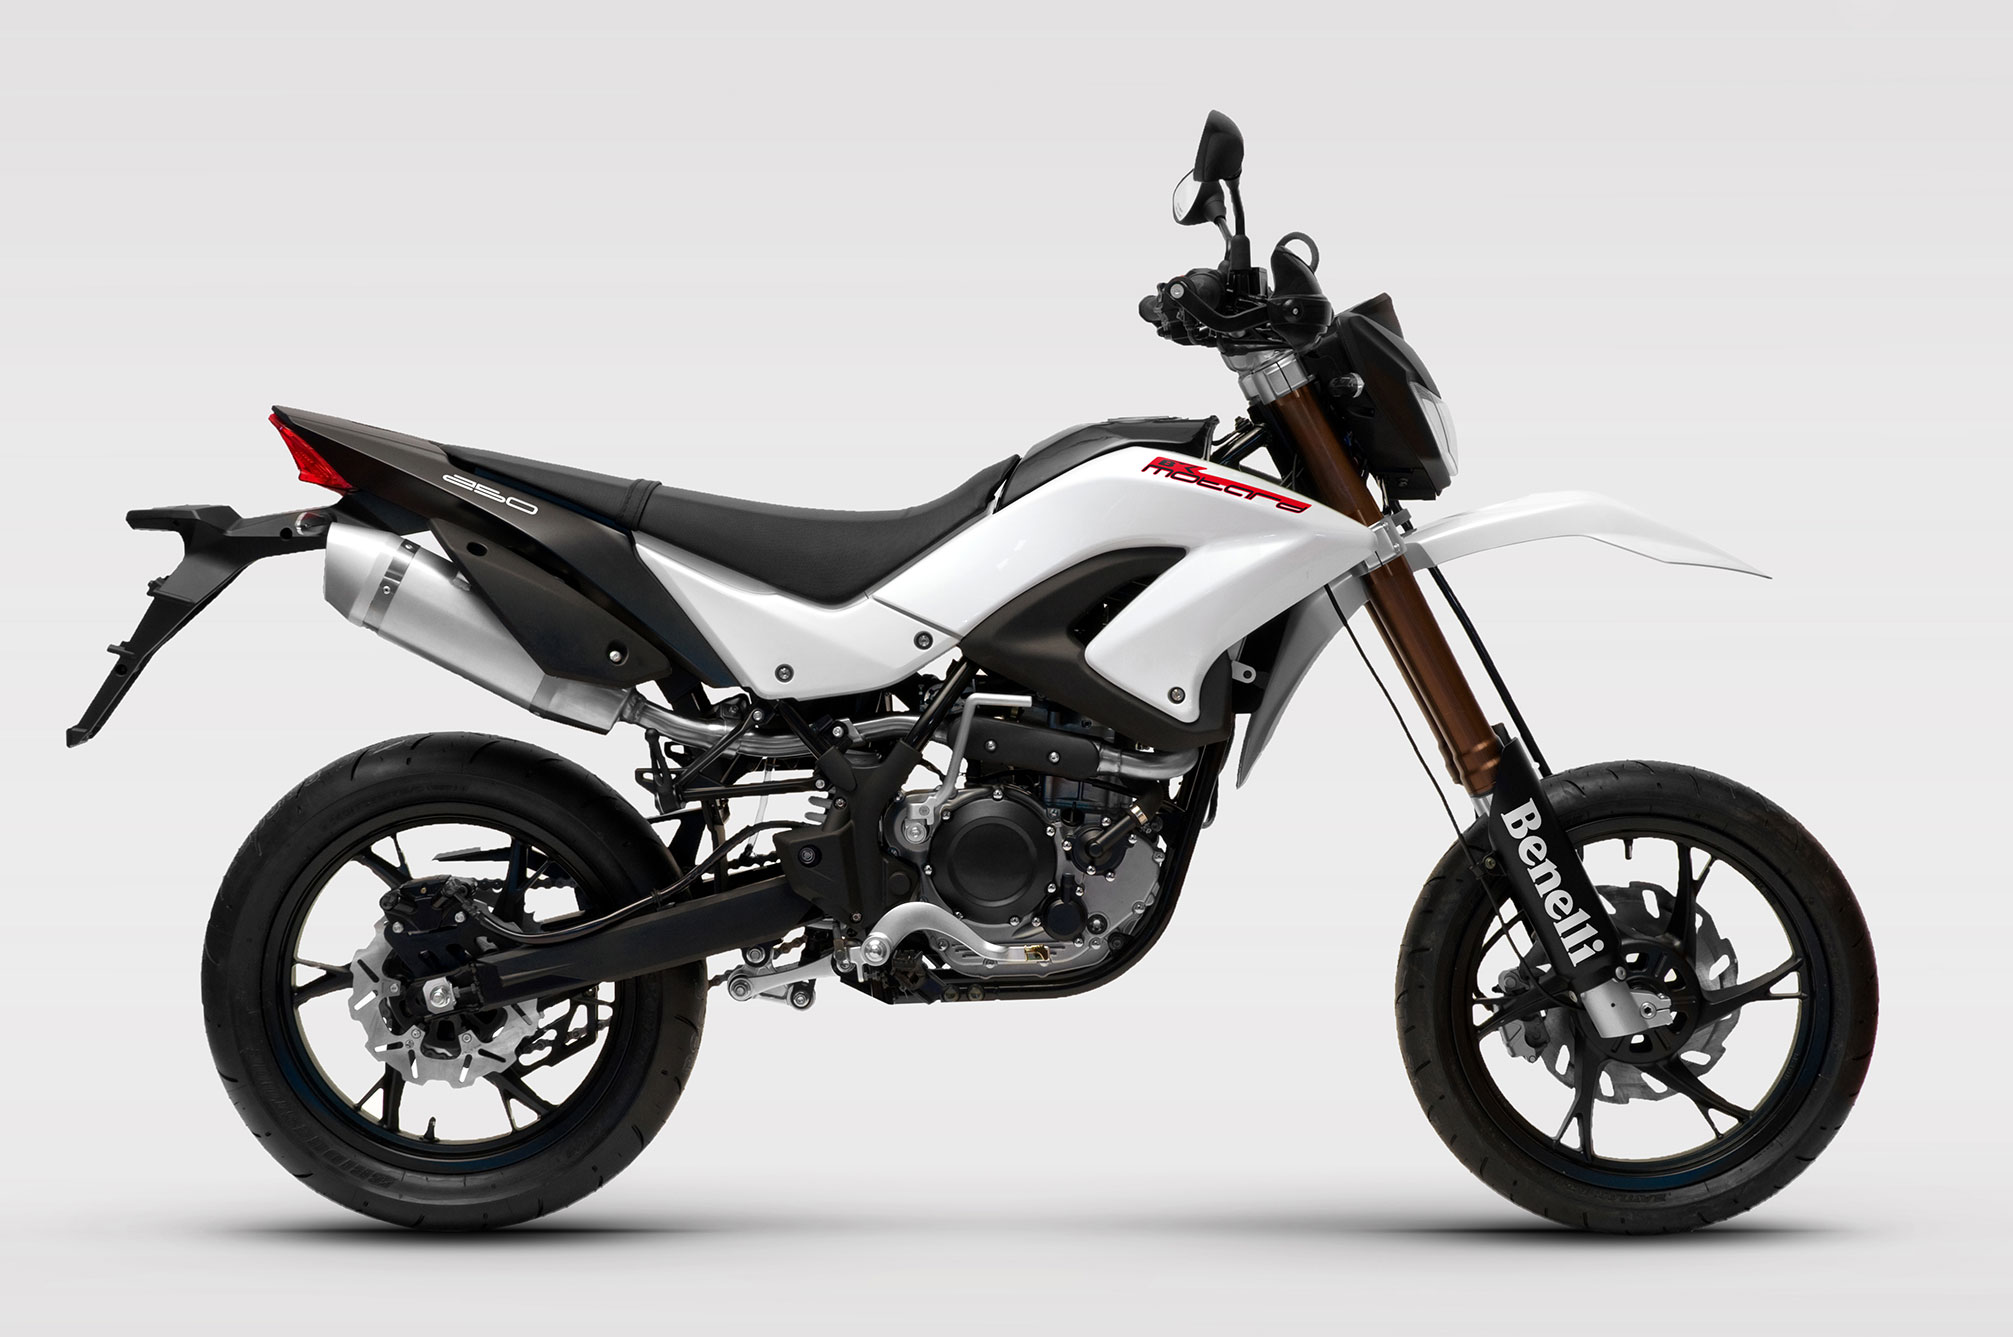 2013 Benelli Motard 250 Review